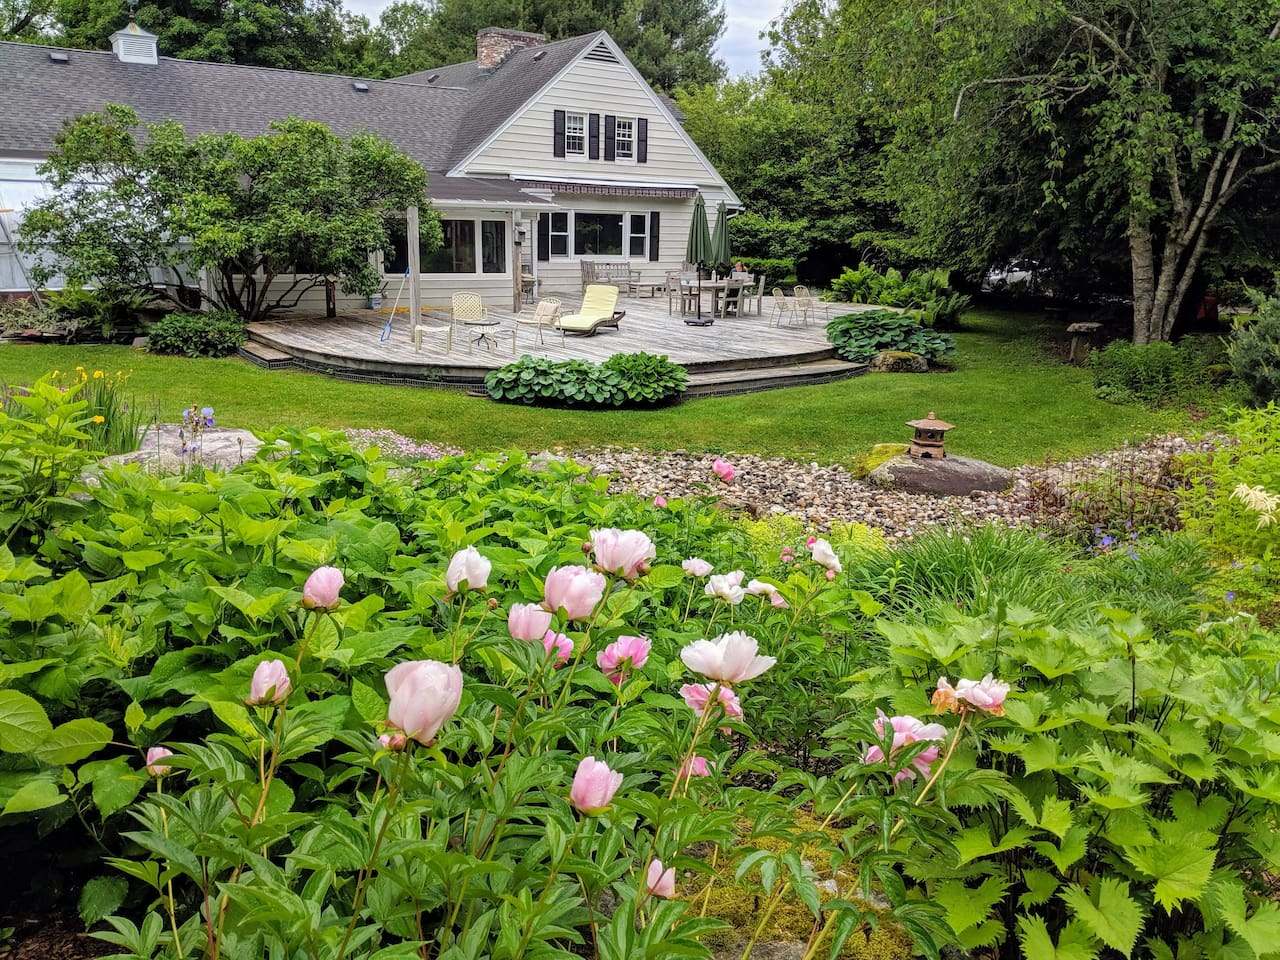 Our large beautiful back deck overlooking the gardens.  Plenty of room to relax, meditate, do tai chi or yoga, to the sound of our small waterfall and frog pond